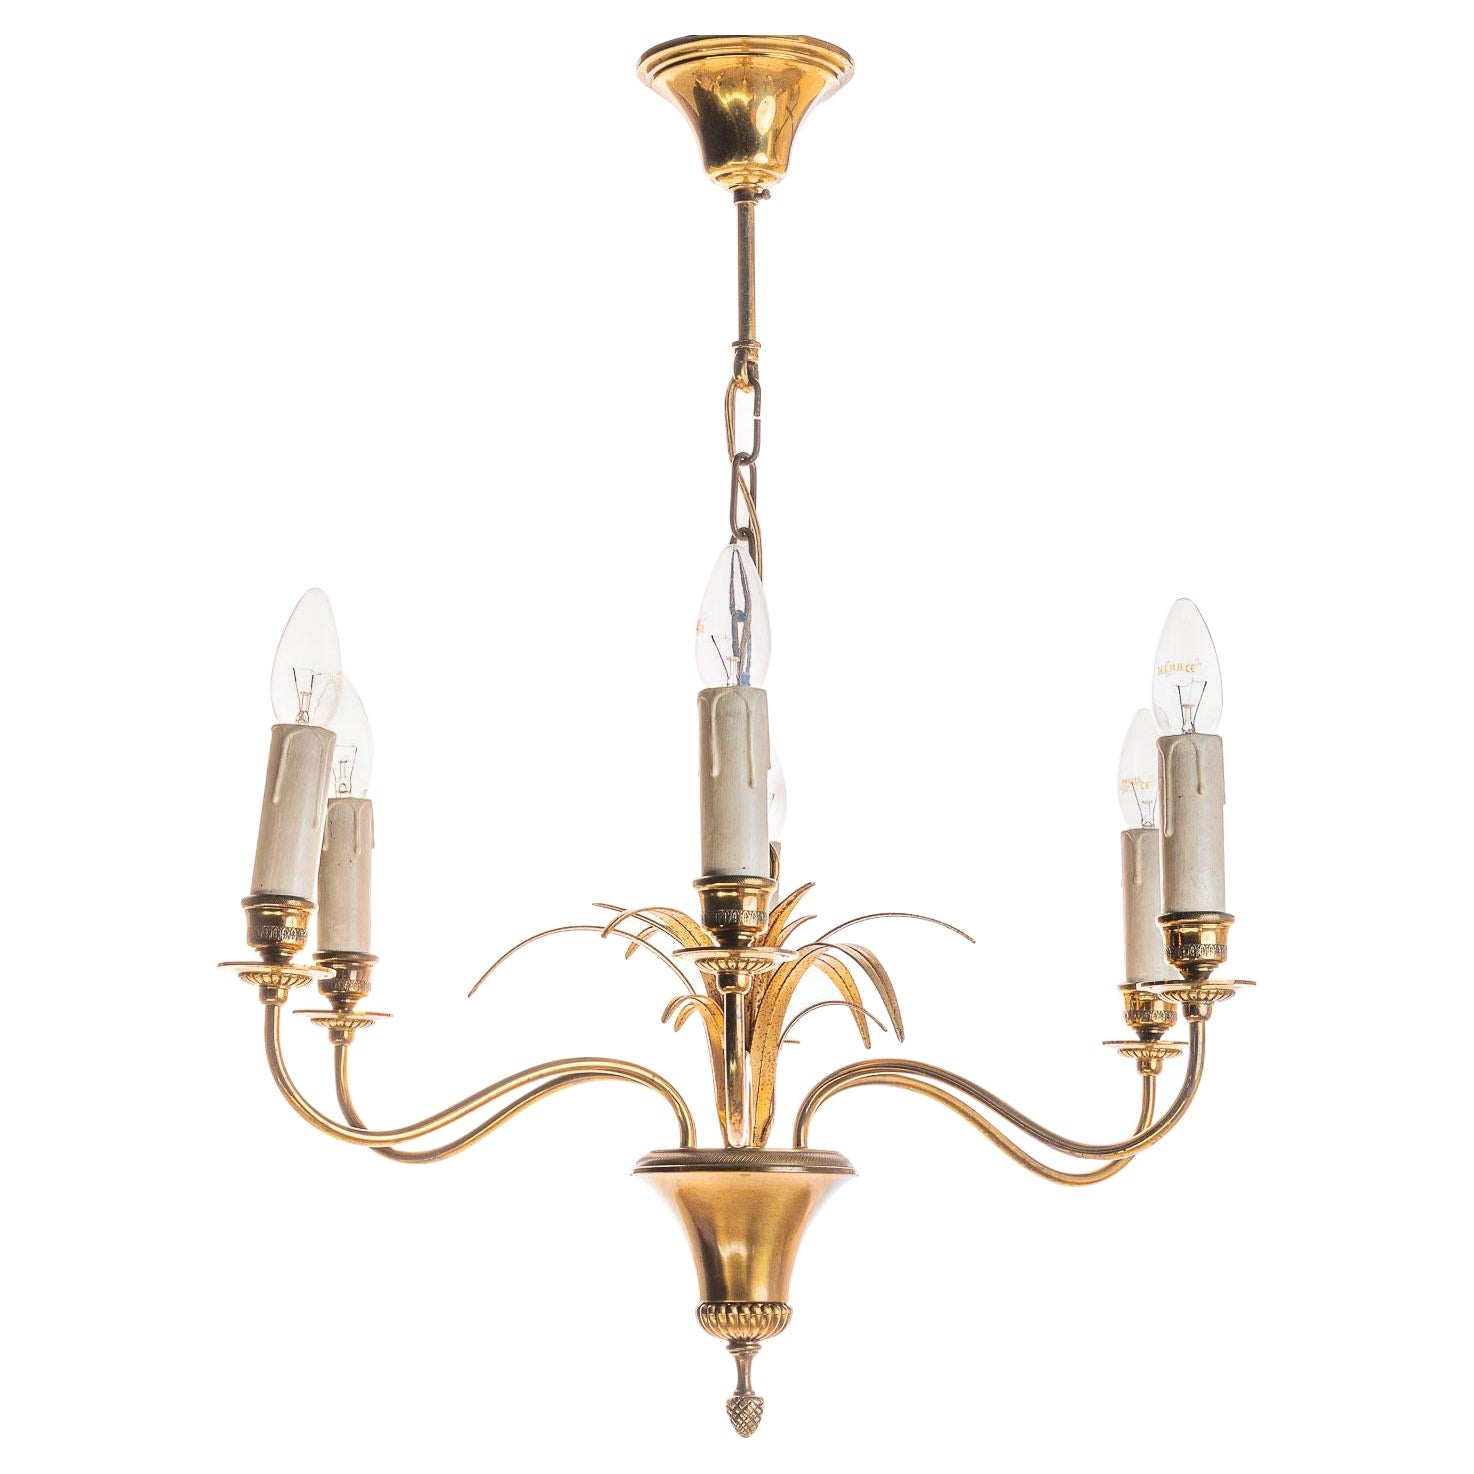 1970's Brass Chandelier In style of Maison Charles